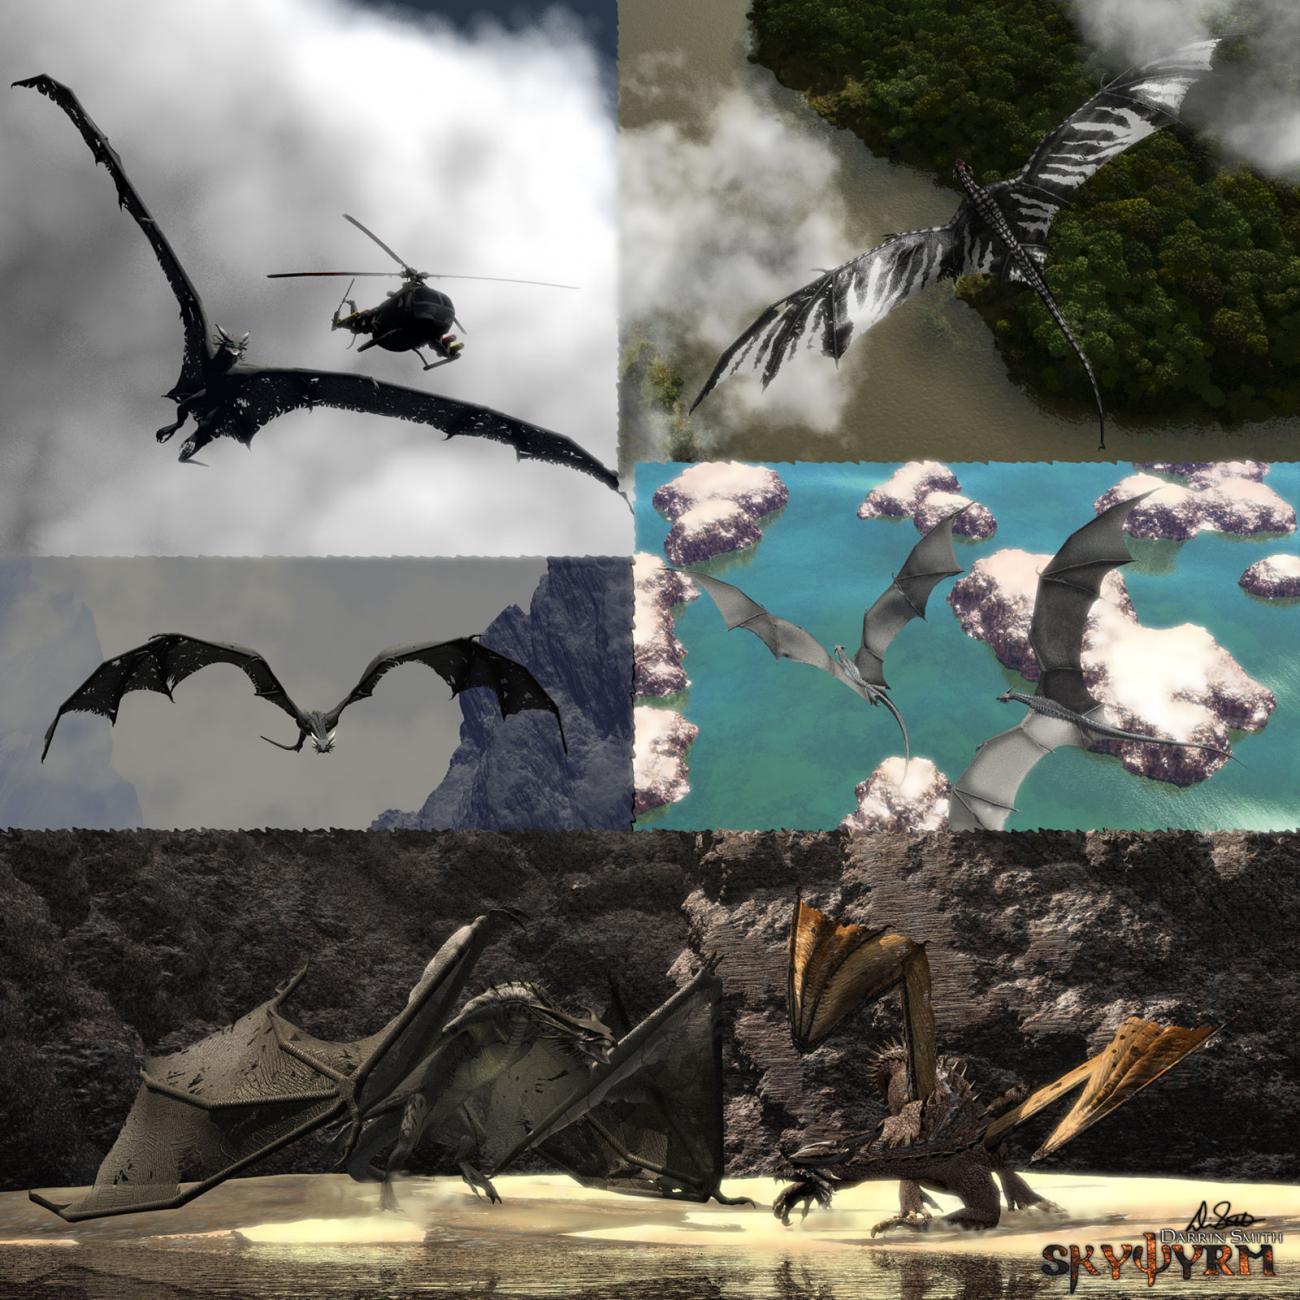 Skywyrm Collage